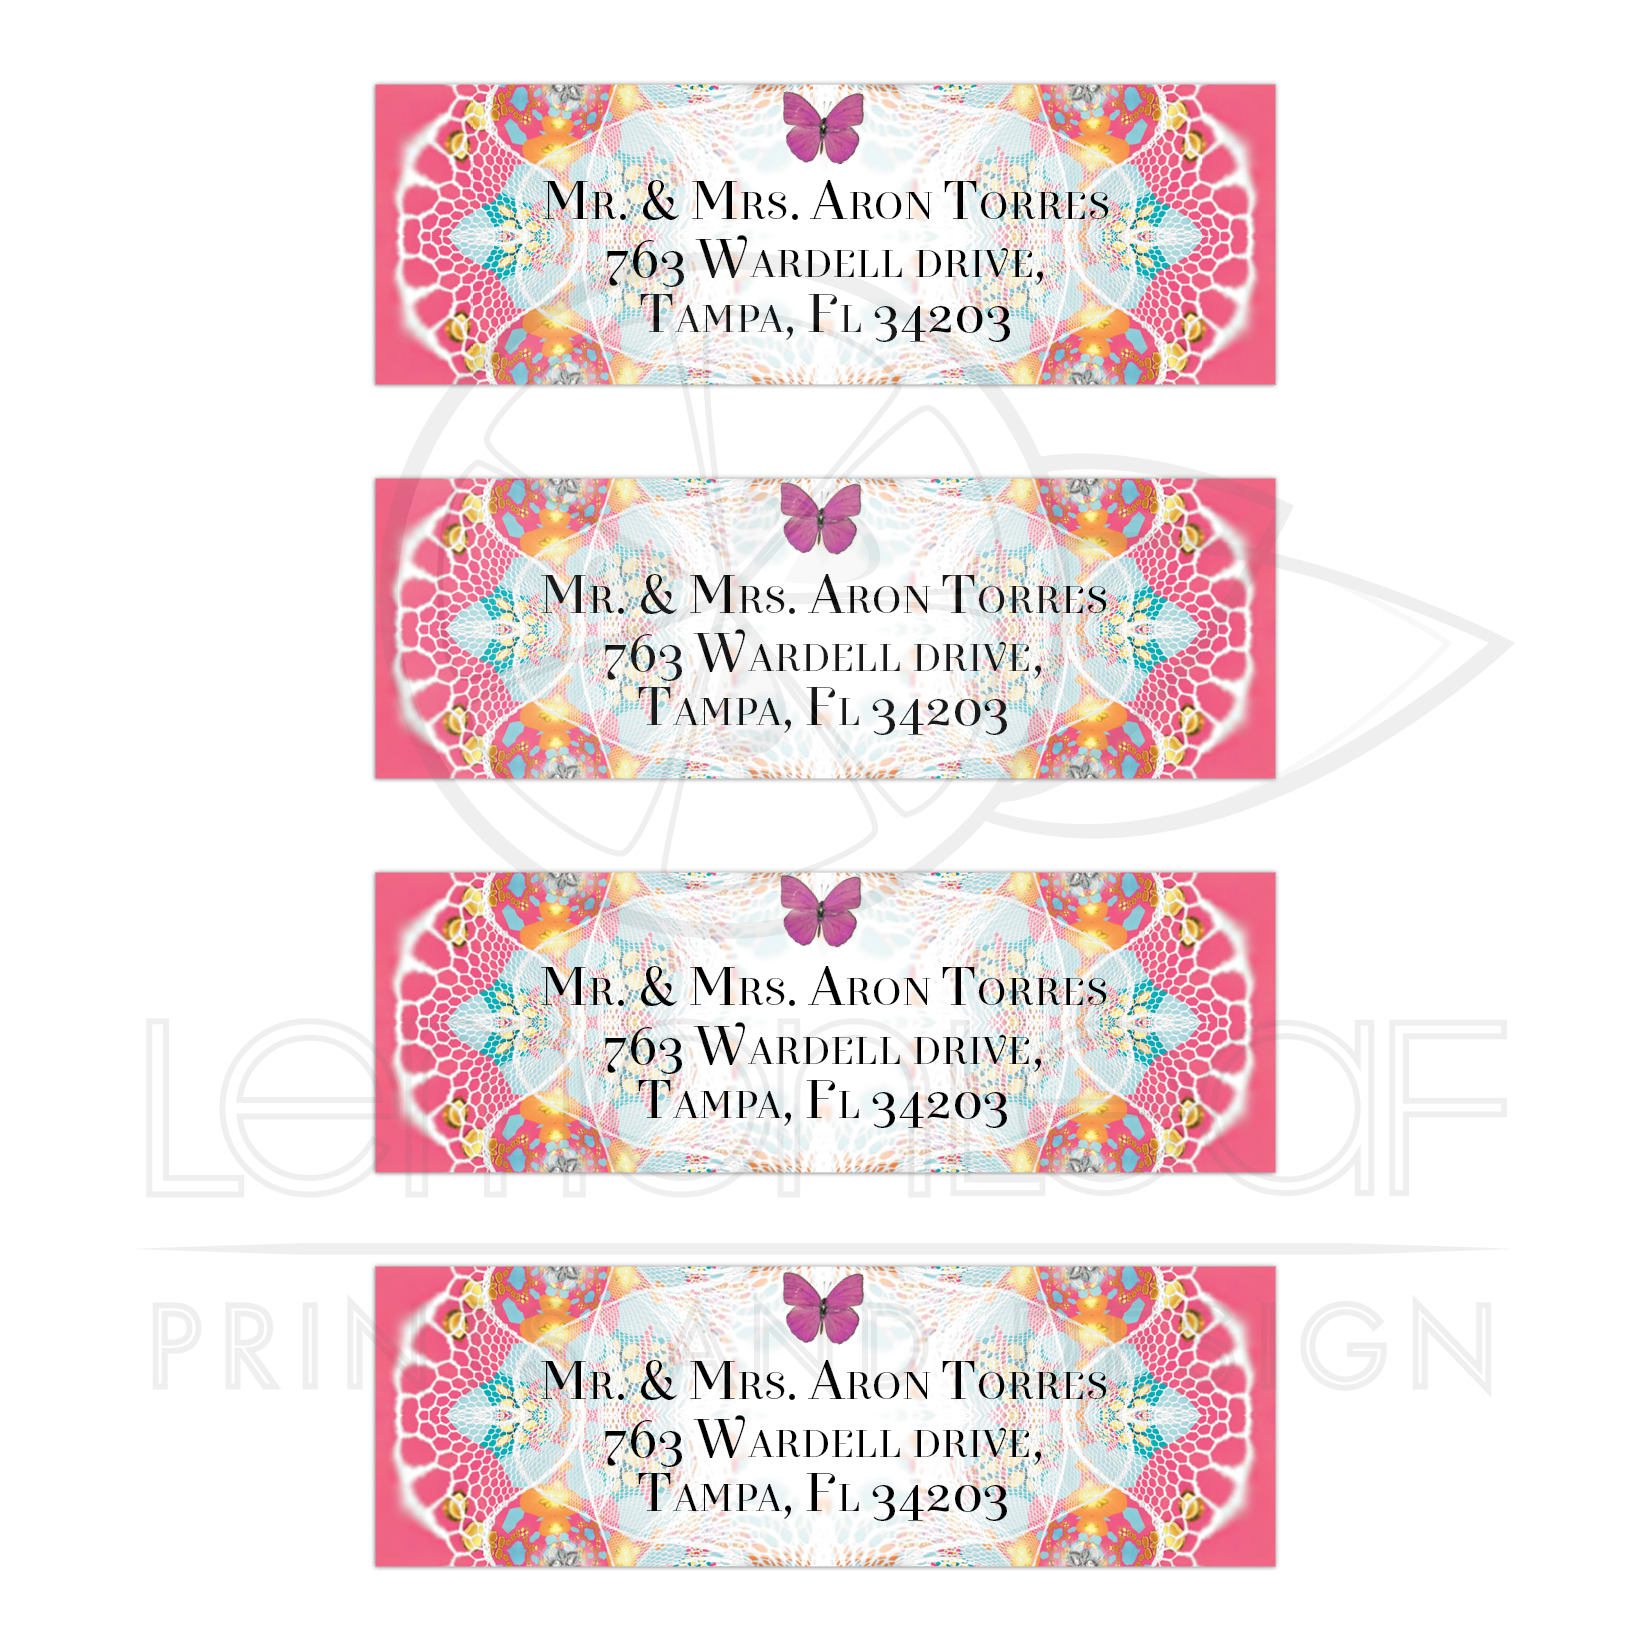 Communion Invitations Wording as perfect invitation design